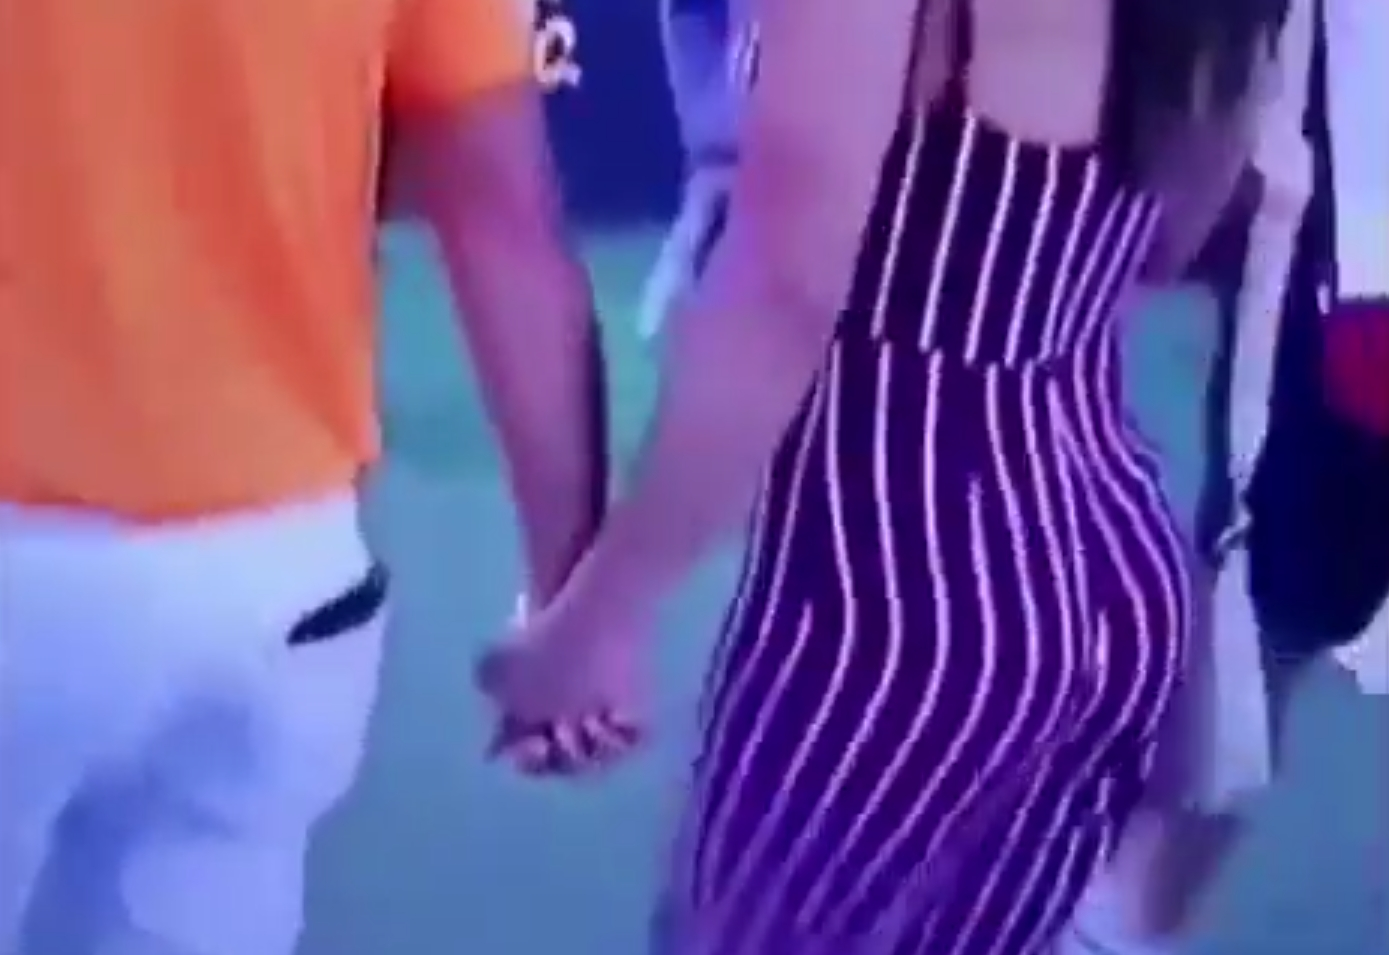 Cameraman at Honda Classic Made Sure to Get a Closeup of Ricky Fowler's Fiancee Allison Stokke's Butt